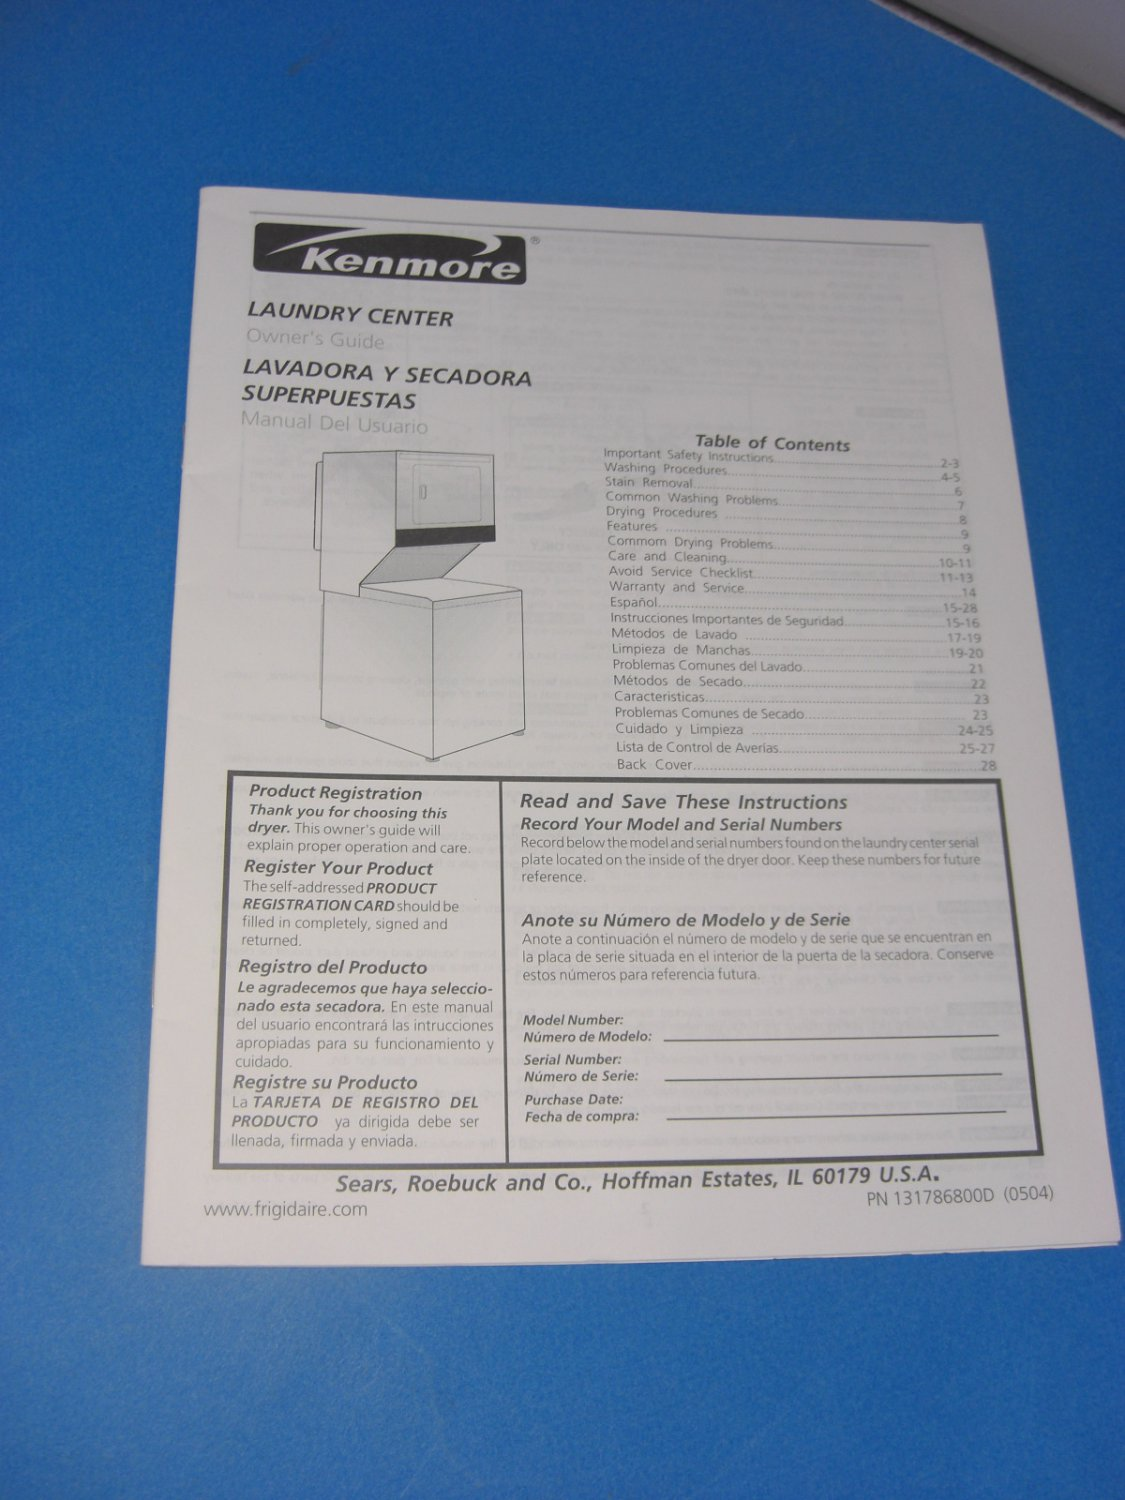 Kenmore LAUNDRY CENTER Instruction Manual